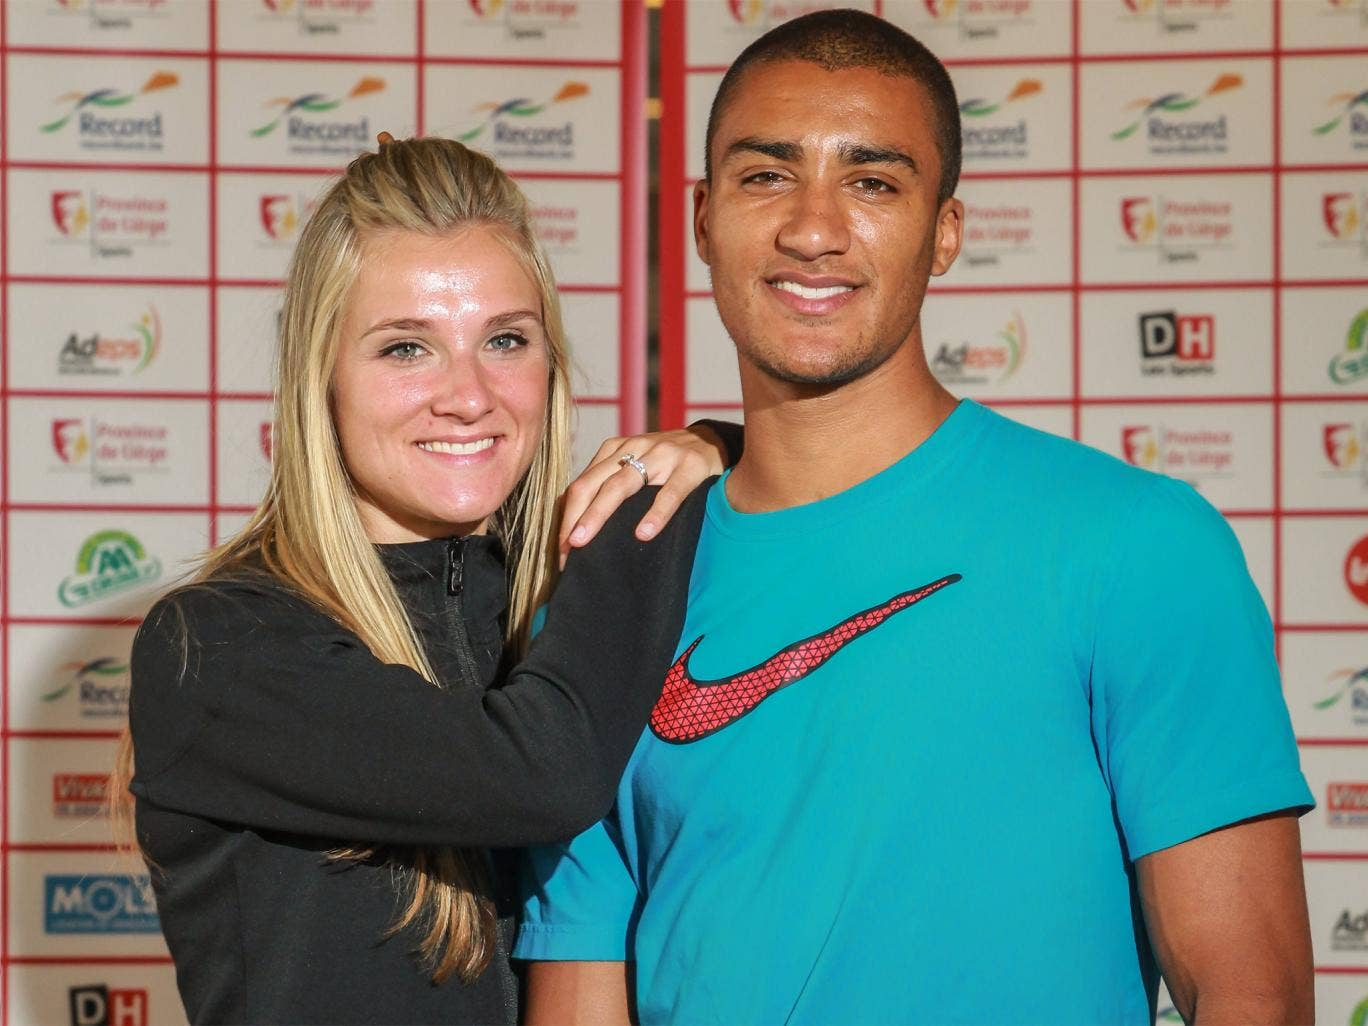 Reigning Olympic decathlon champion Ashton Eaton pictured with his wife Brianne Theisen-Eaton